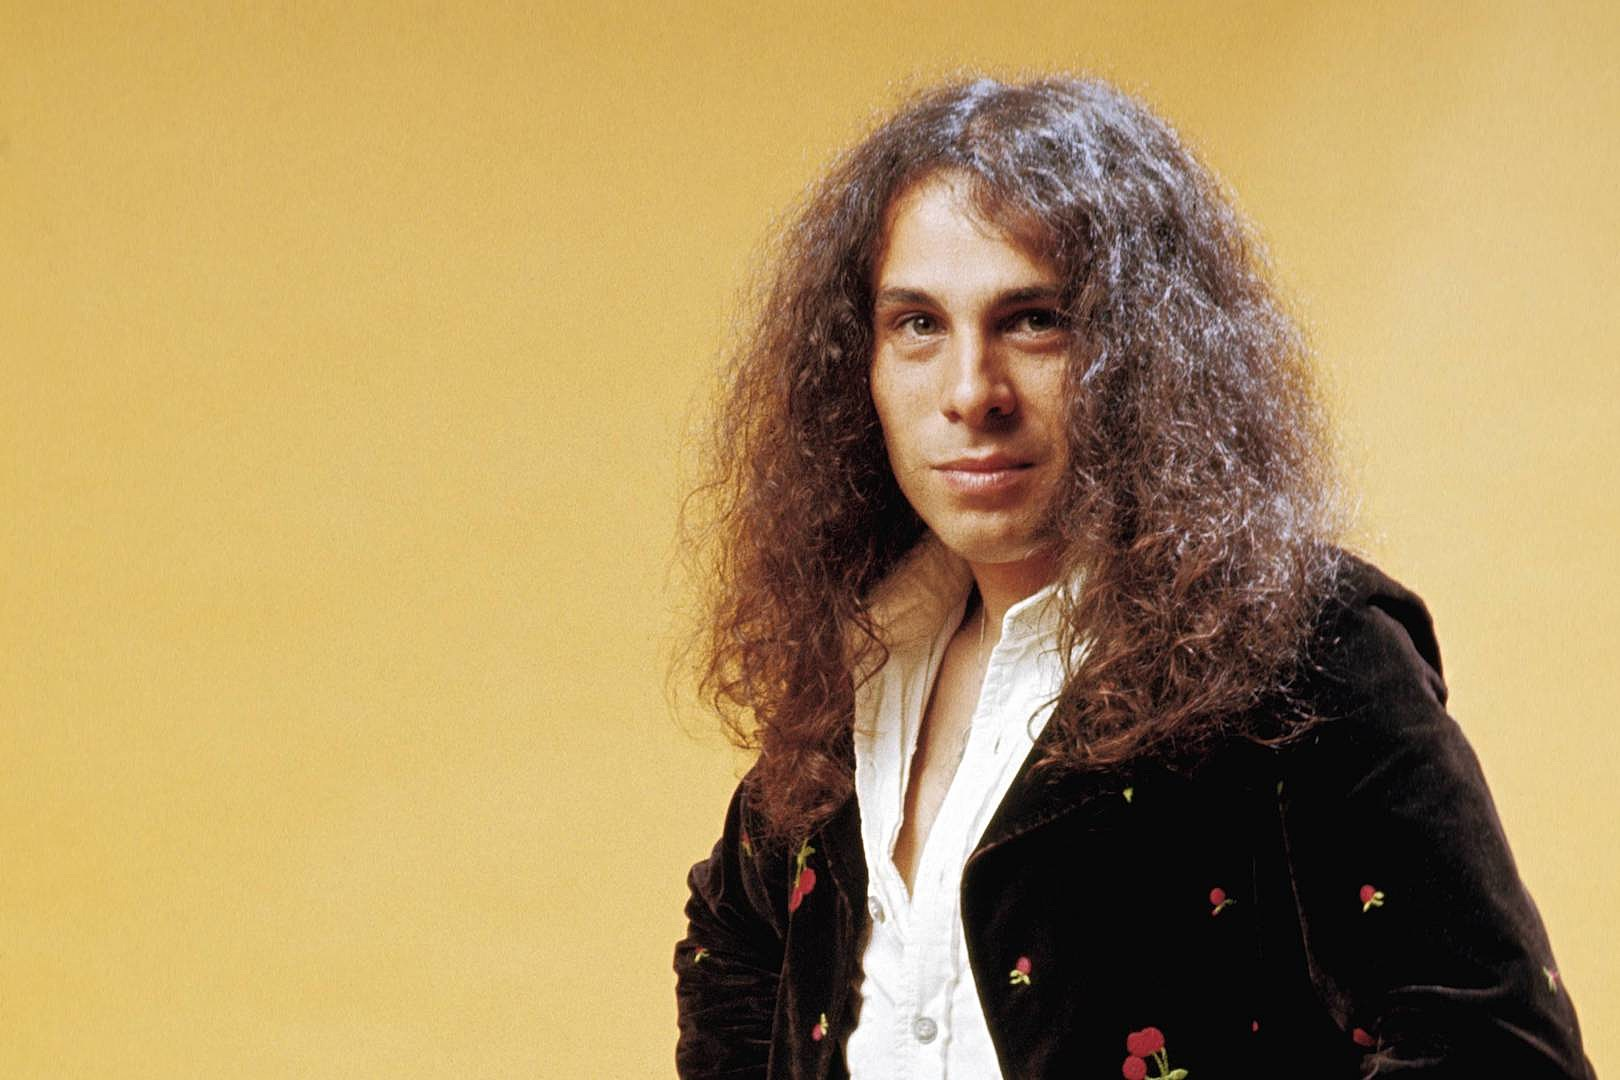 See Photos of Ronnie James Dio Through the Years